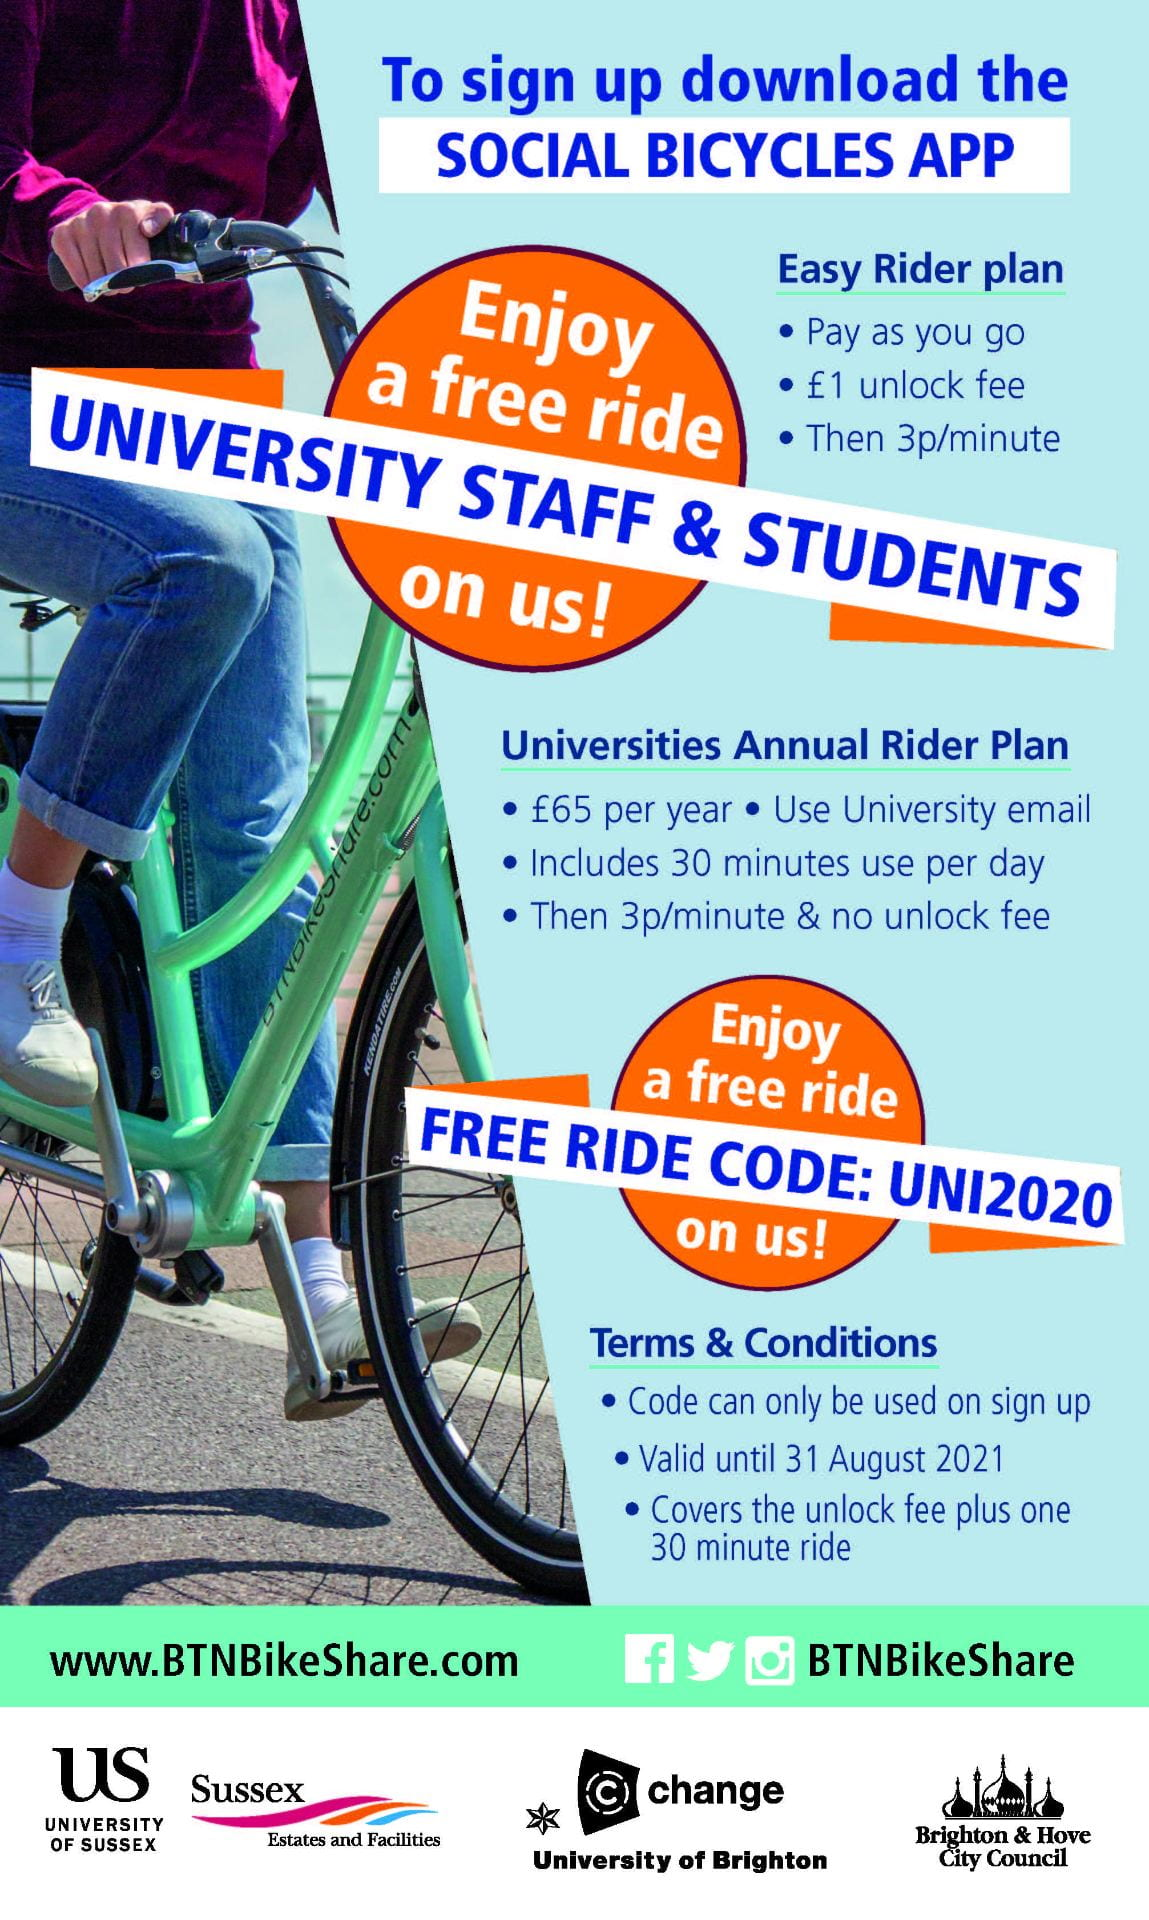 Download the Social Bicycles app - use code UNI2020 for a free ride